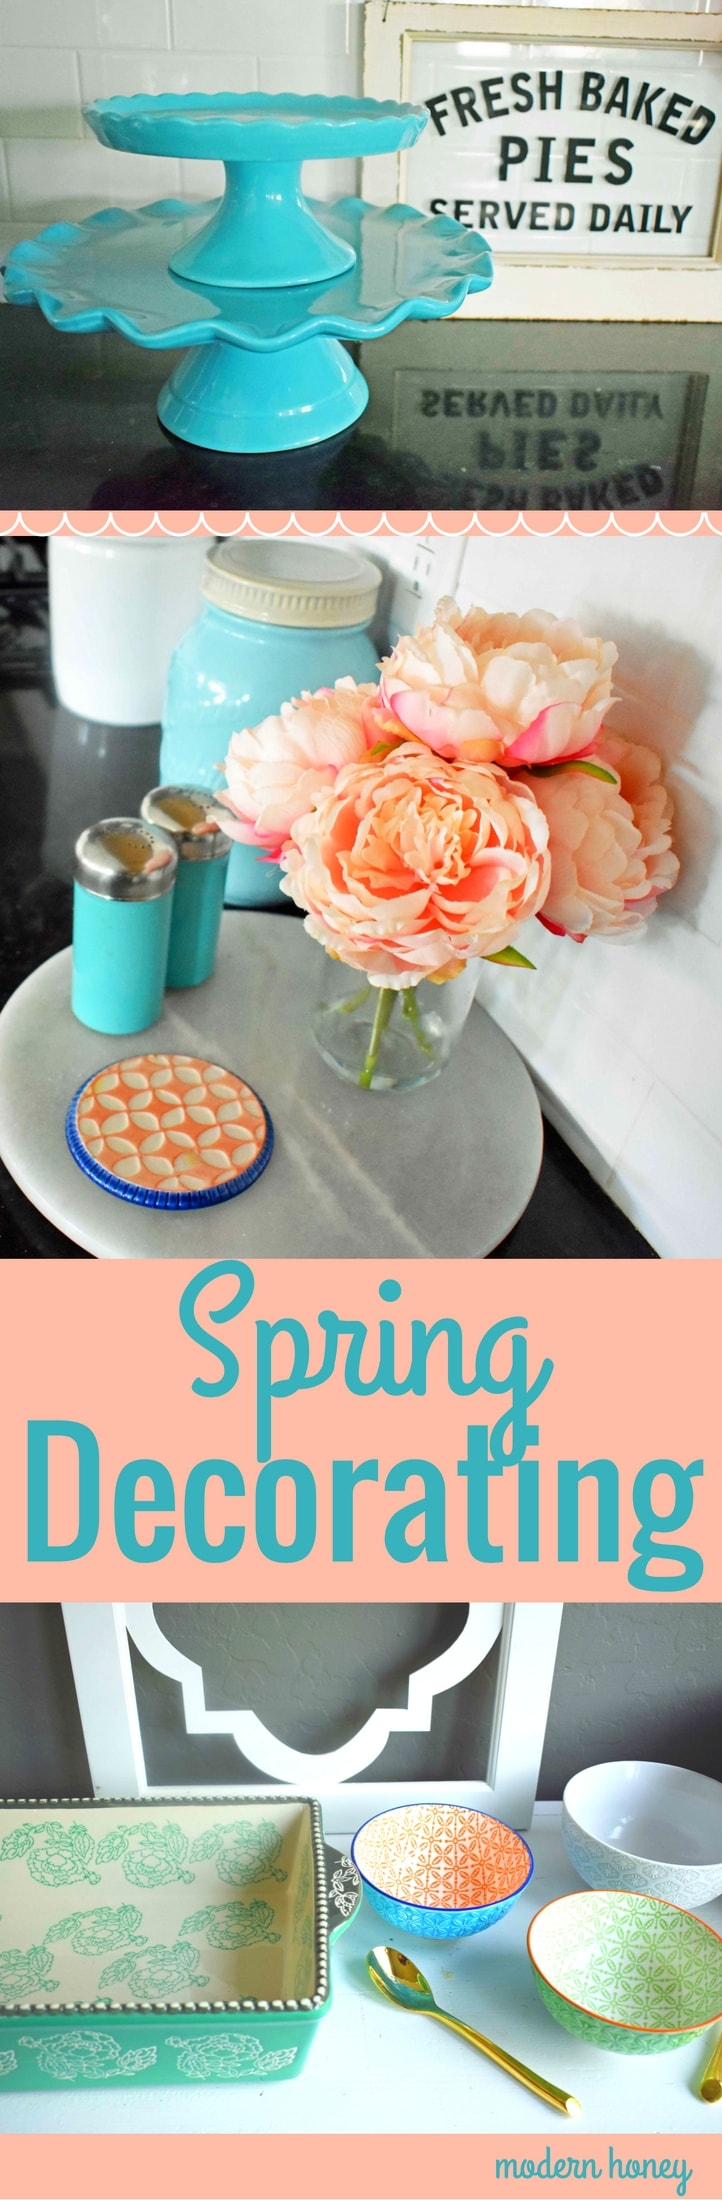 Spring Decorating Ideas. Light and bright ways to transform your space using soft florals, bright whites, and gorgeous tablescapes. Sharing where to buy stylish design pieces for a great price. www.modernhoney.com